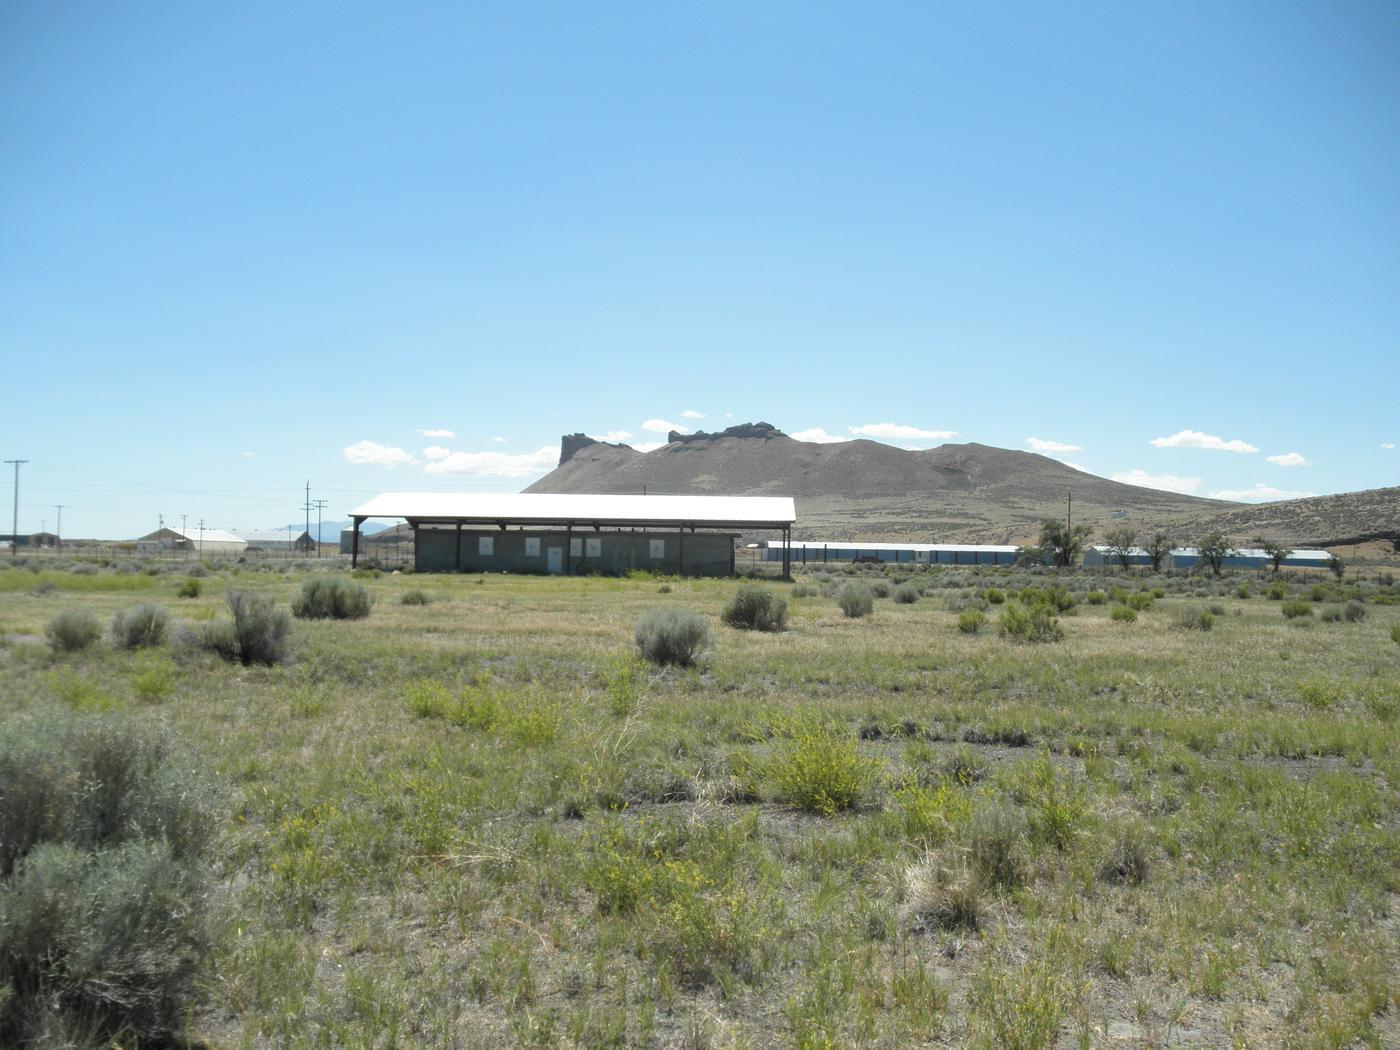 Tule Lake Segregation Center Jail with Castle Rock in the back ground